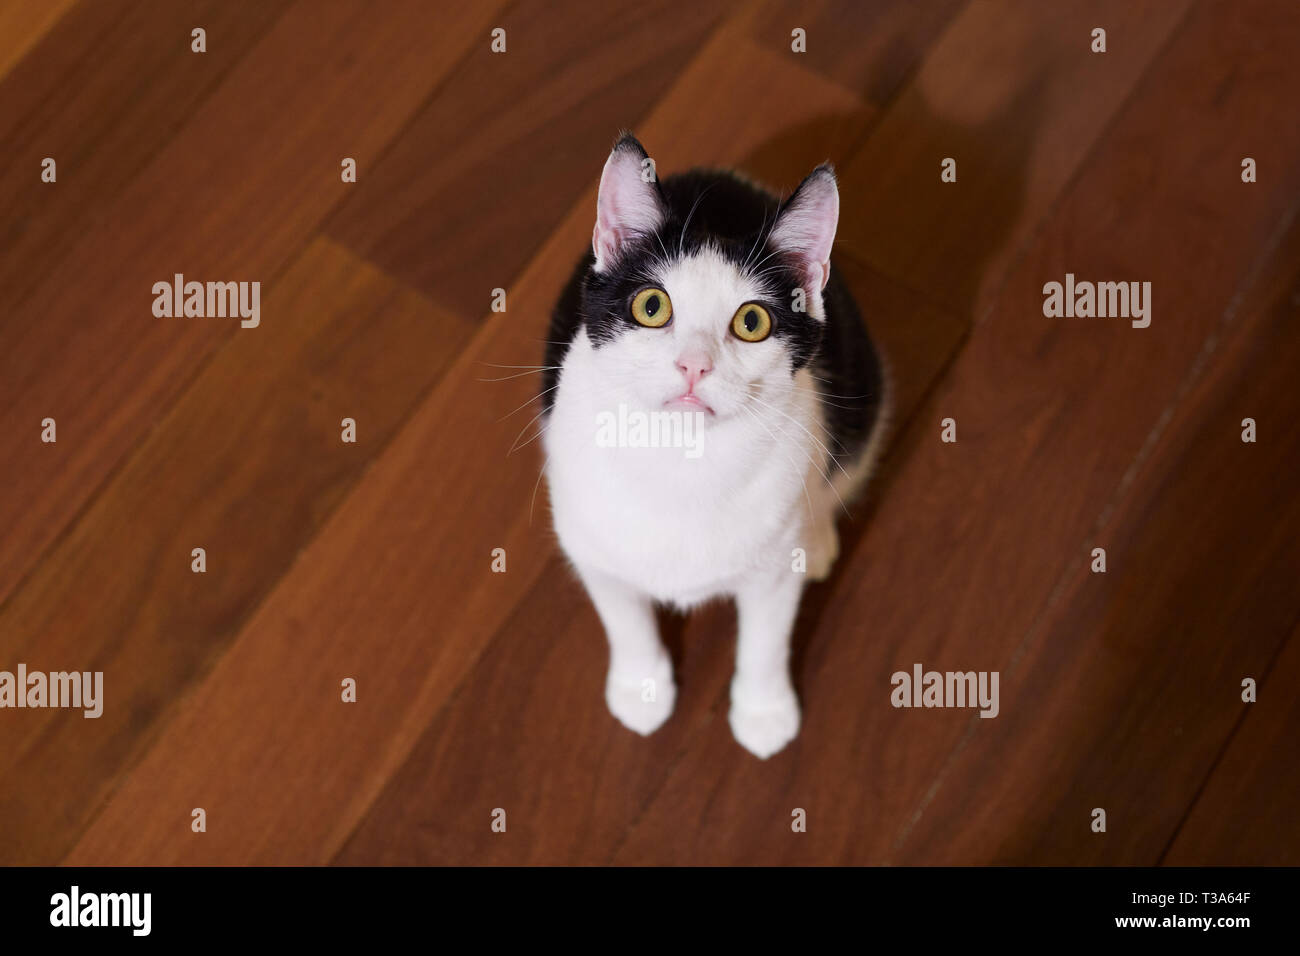 A young playful black and white cat is sitting on hardwood floor and looking up - Stock Image